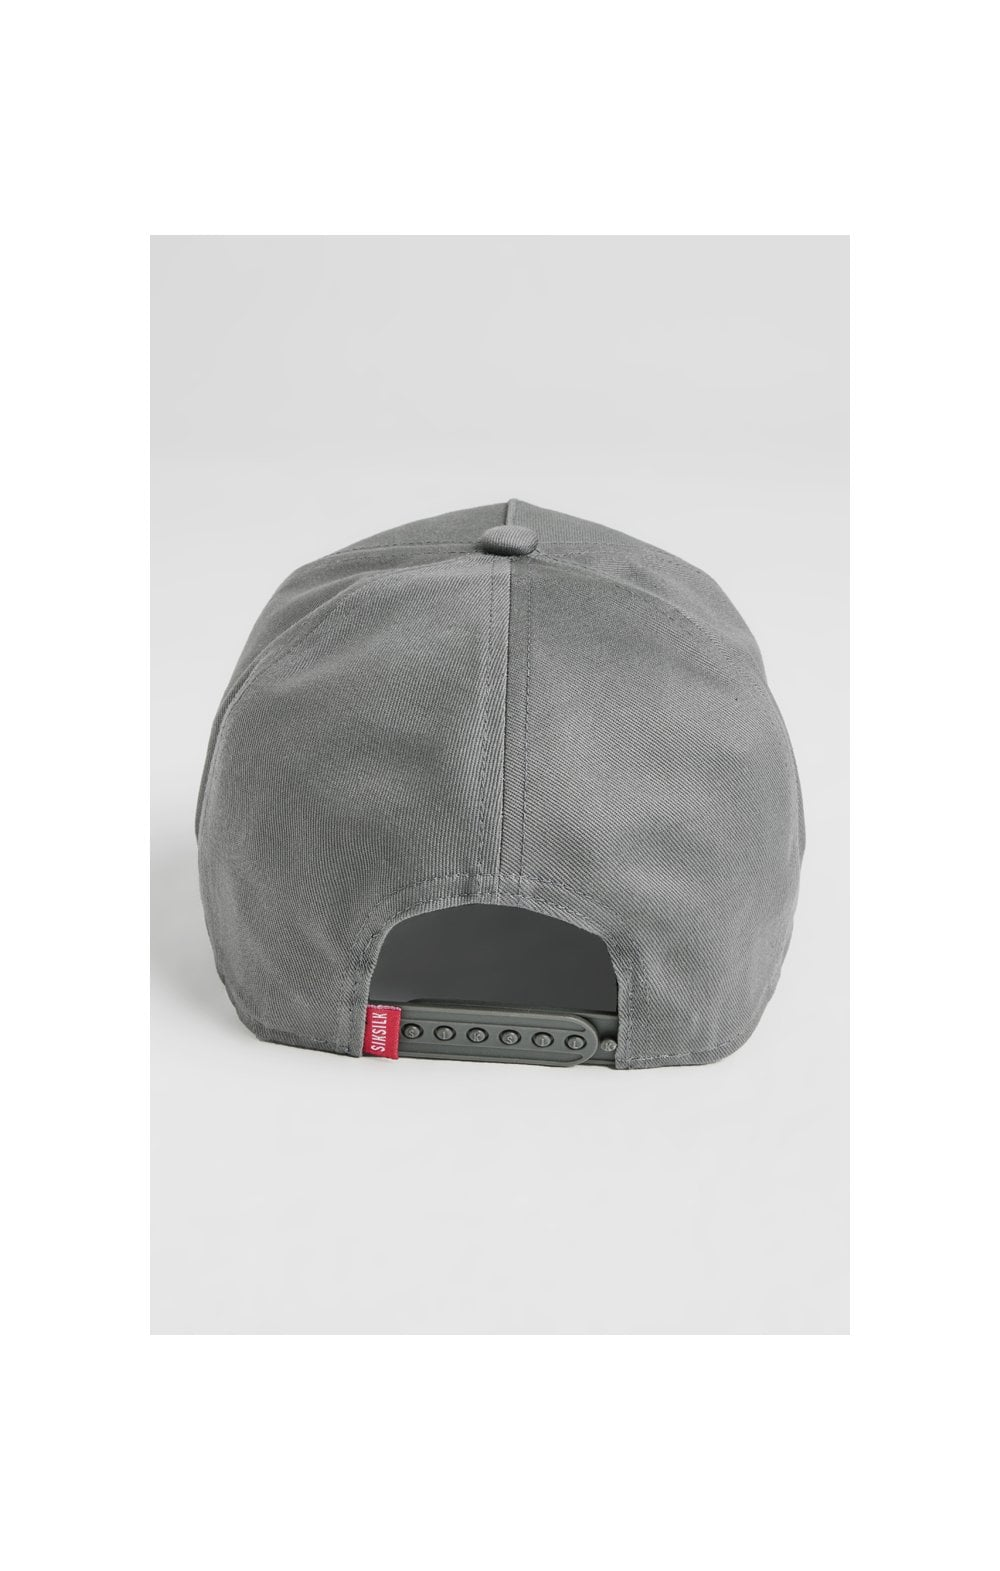 Load image into Gallery viewer, SikSilk Patch Full Trucker - Charcoal (6)